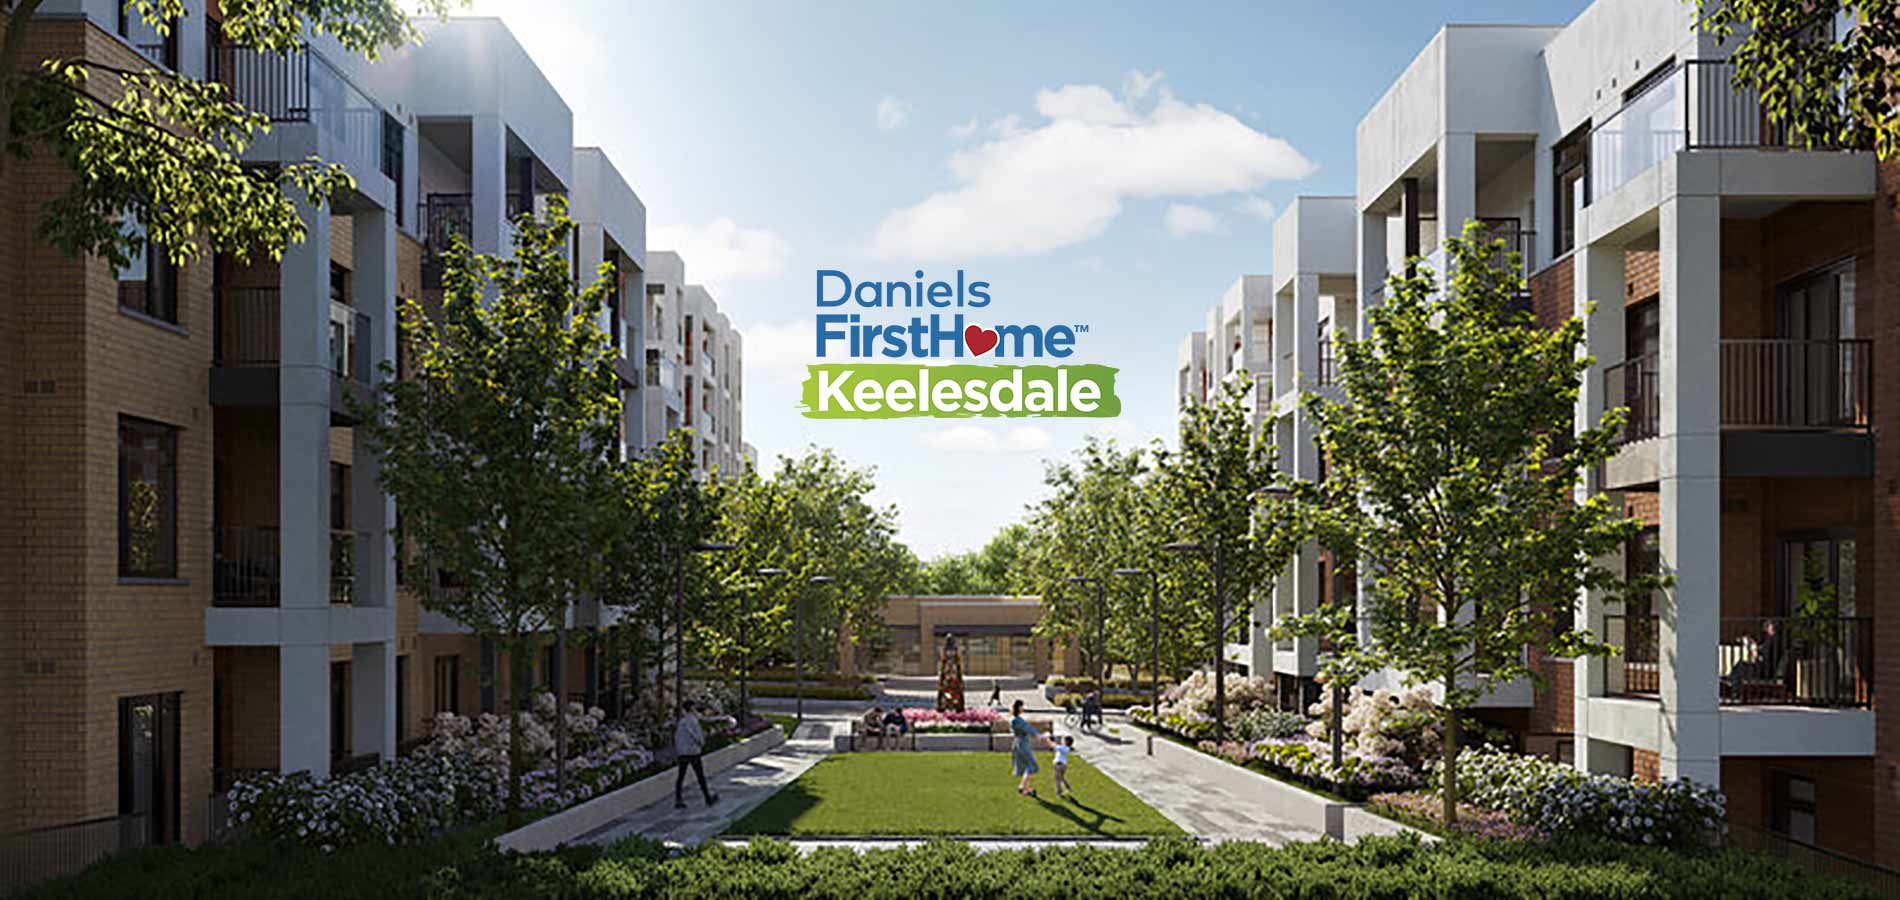 Daniels Firsthome Keelesdale condos